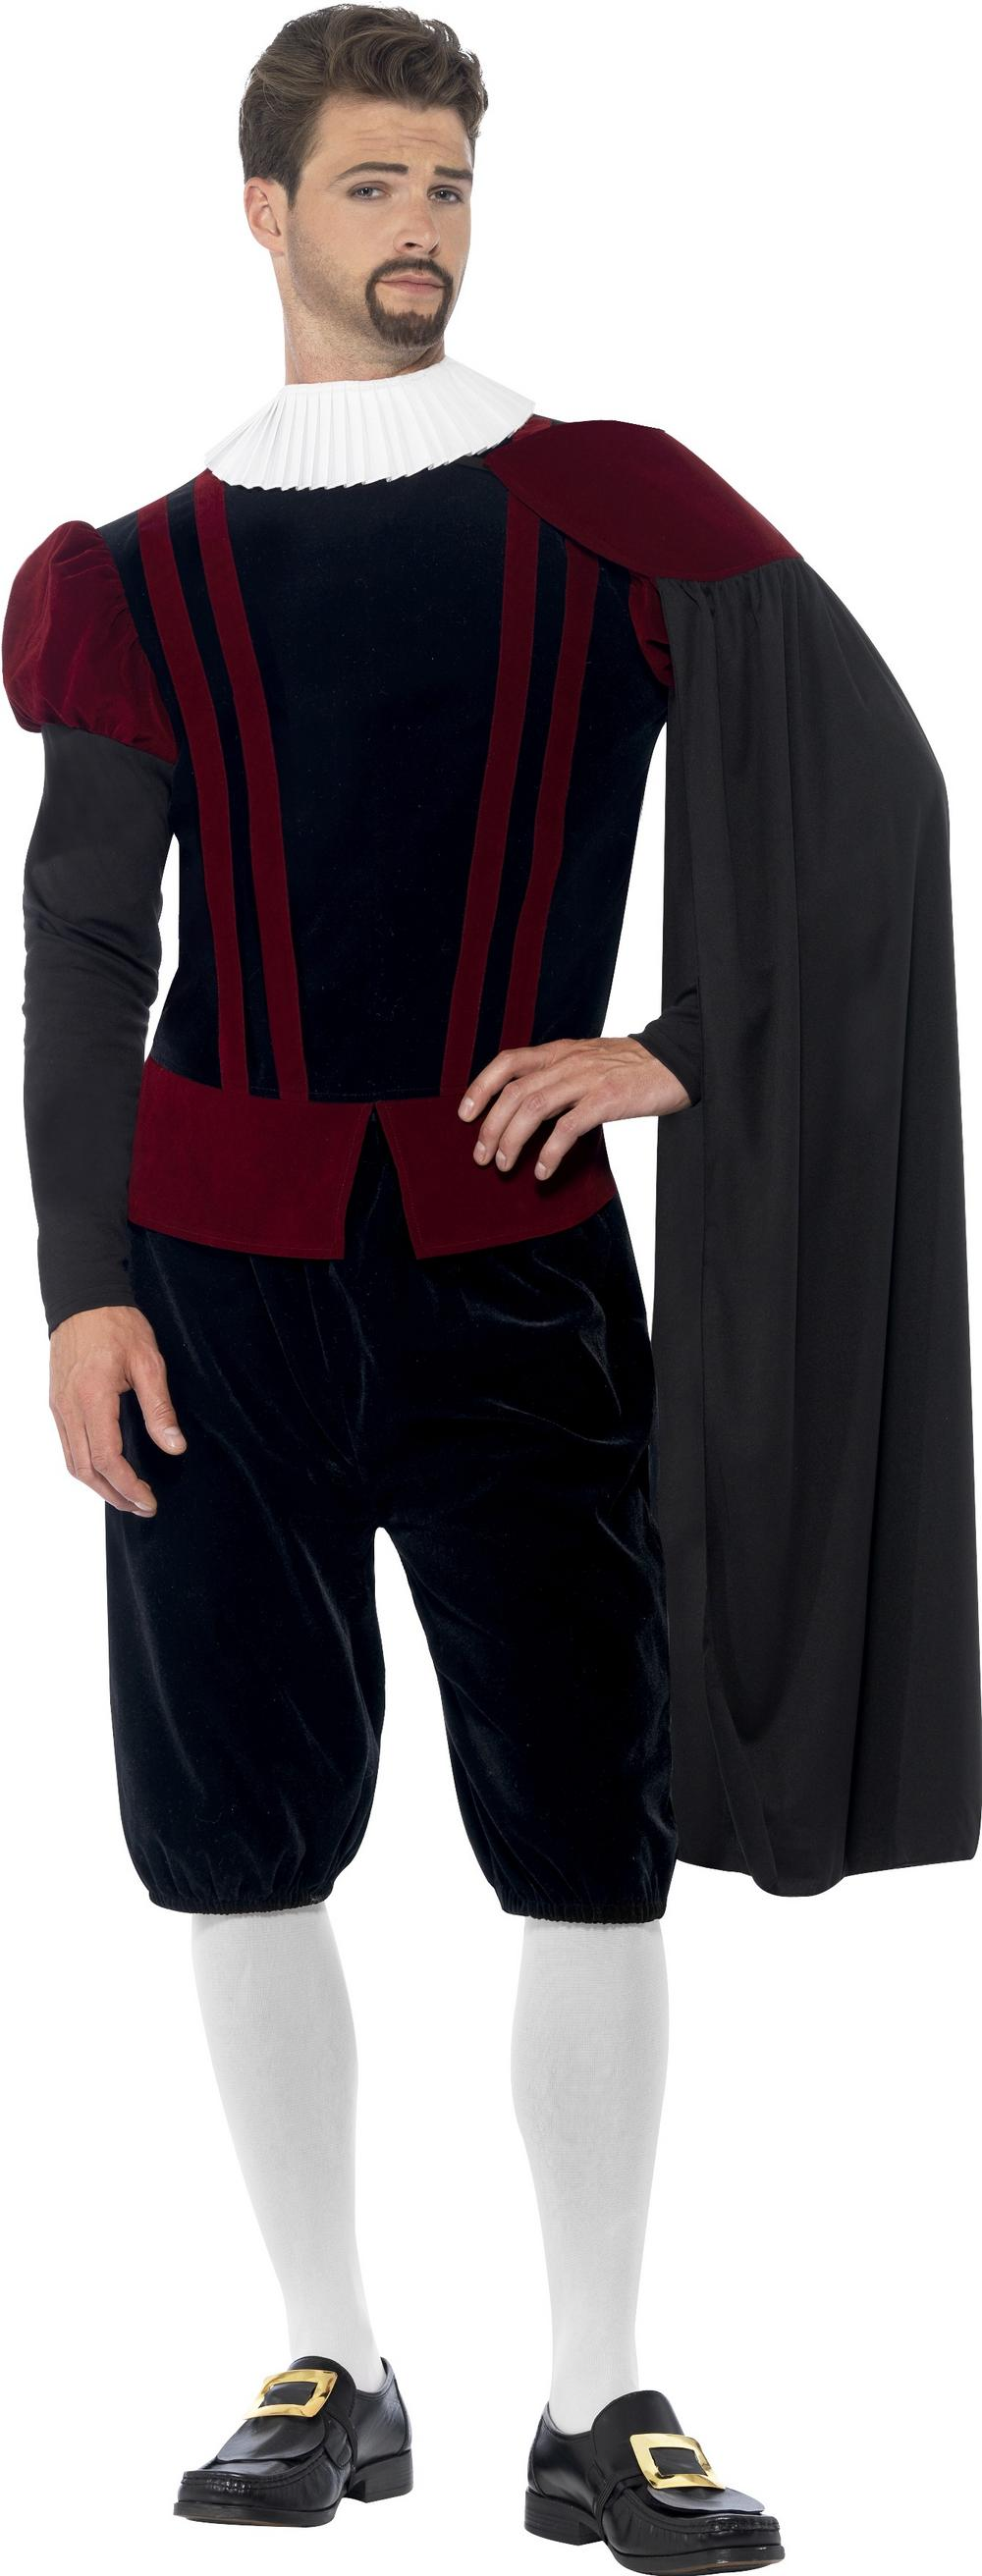 Tudor Lord Deluxe Mens Costume